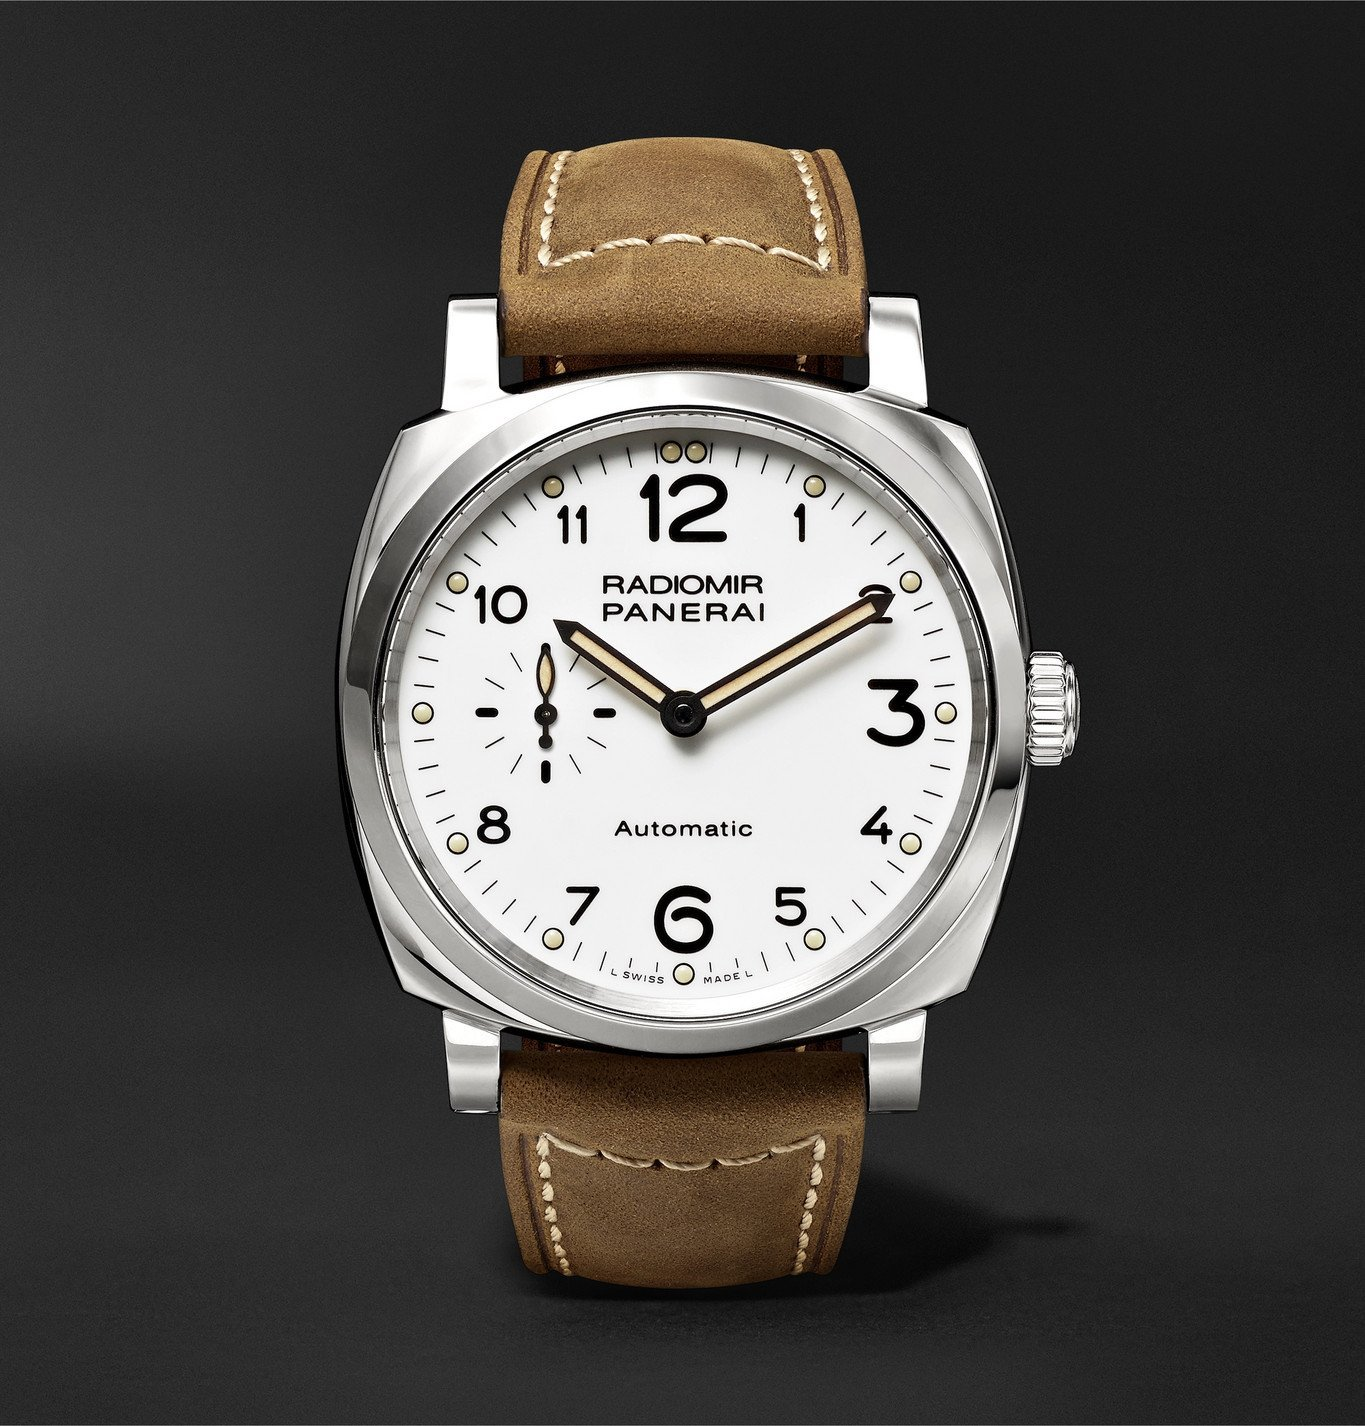 Photo: Panerai - Radiomir 1940 3 Days Automatic Acciaio 42mm Stainless Steel and Leather Watch, Ref. No. PAM00655 - White